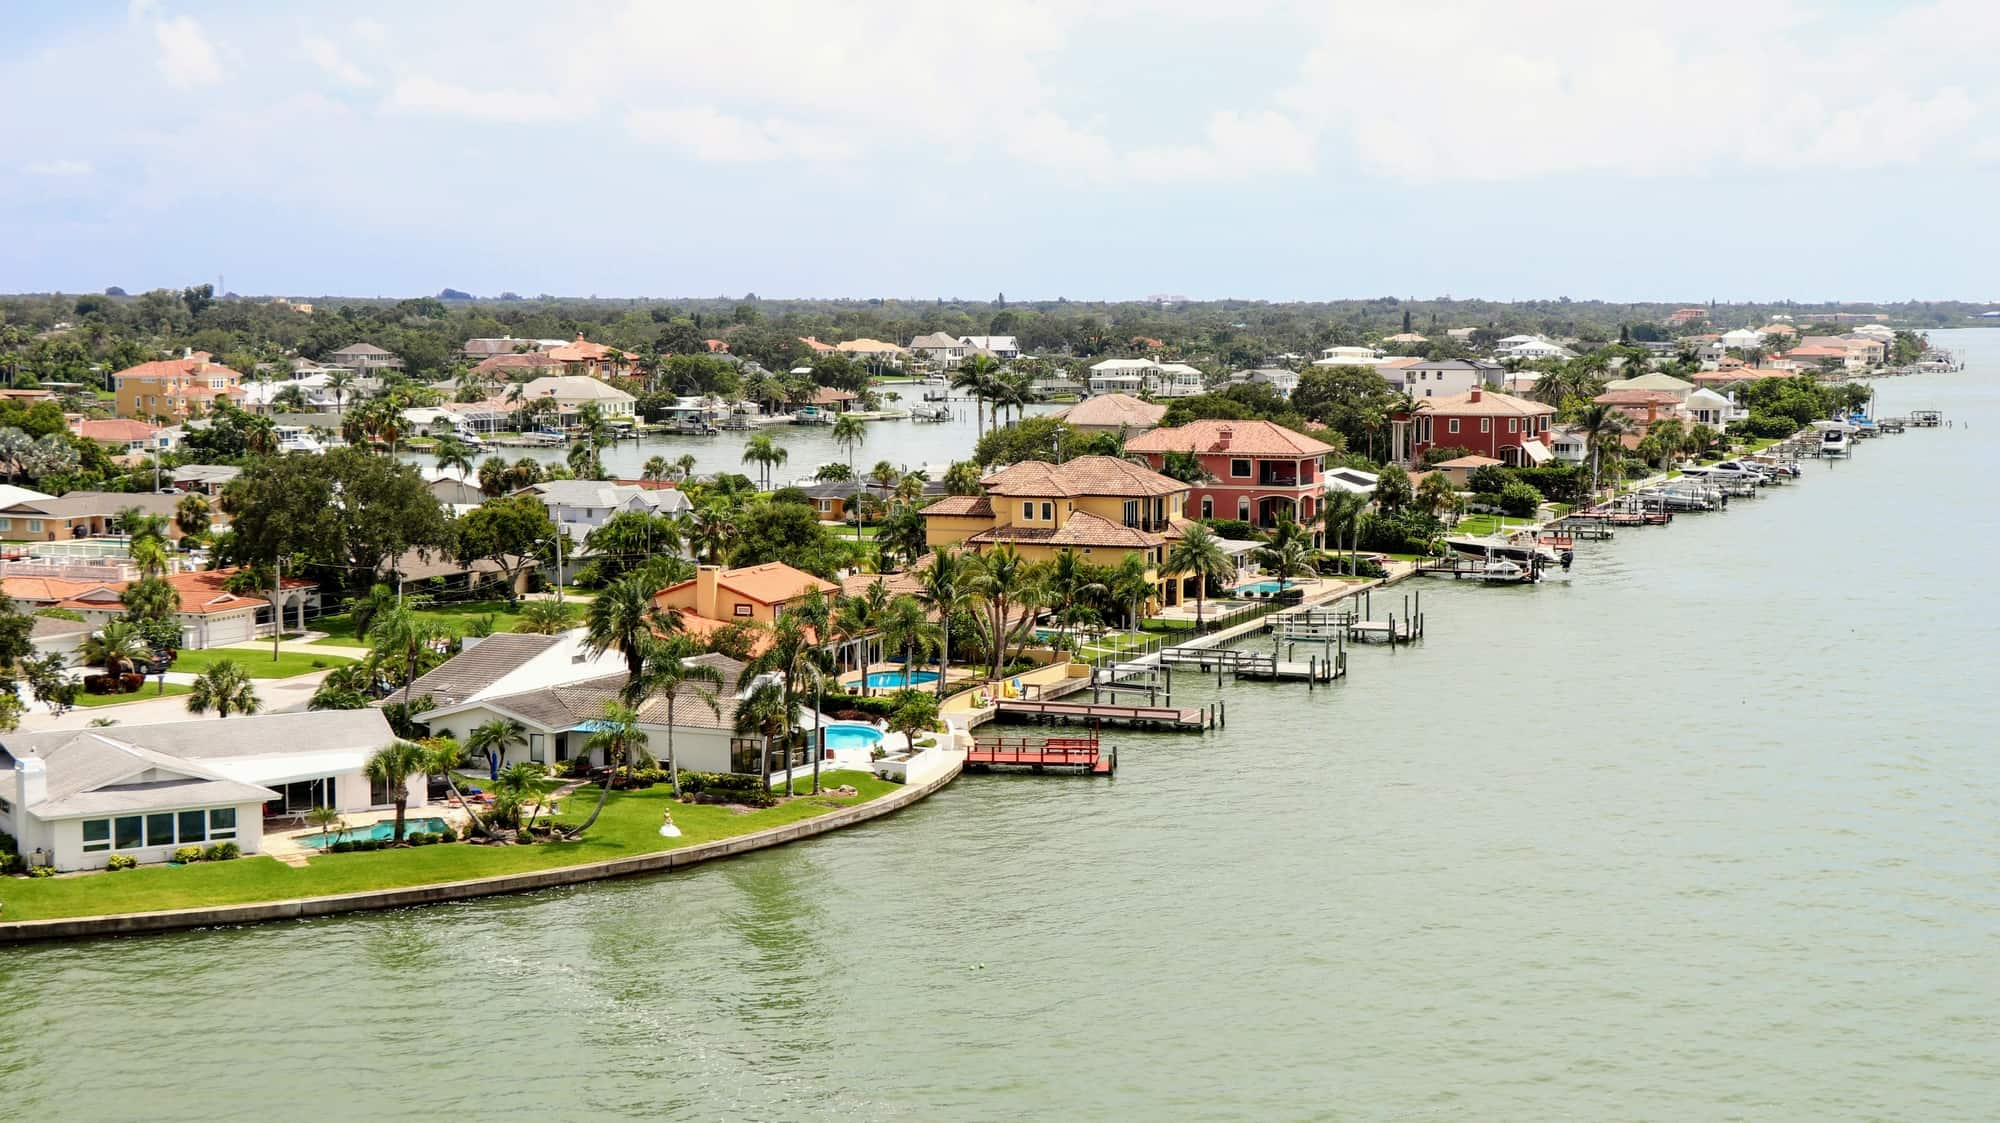 The luxury houses of Belleair, out the the bay with boats and private piers in front